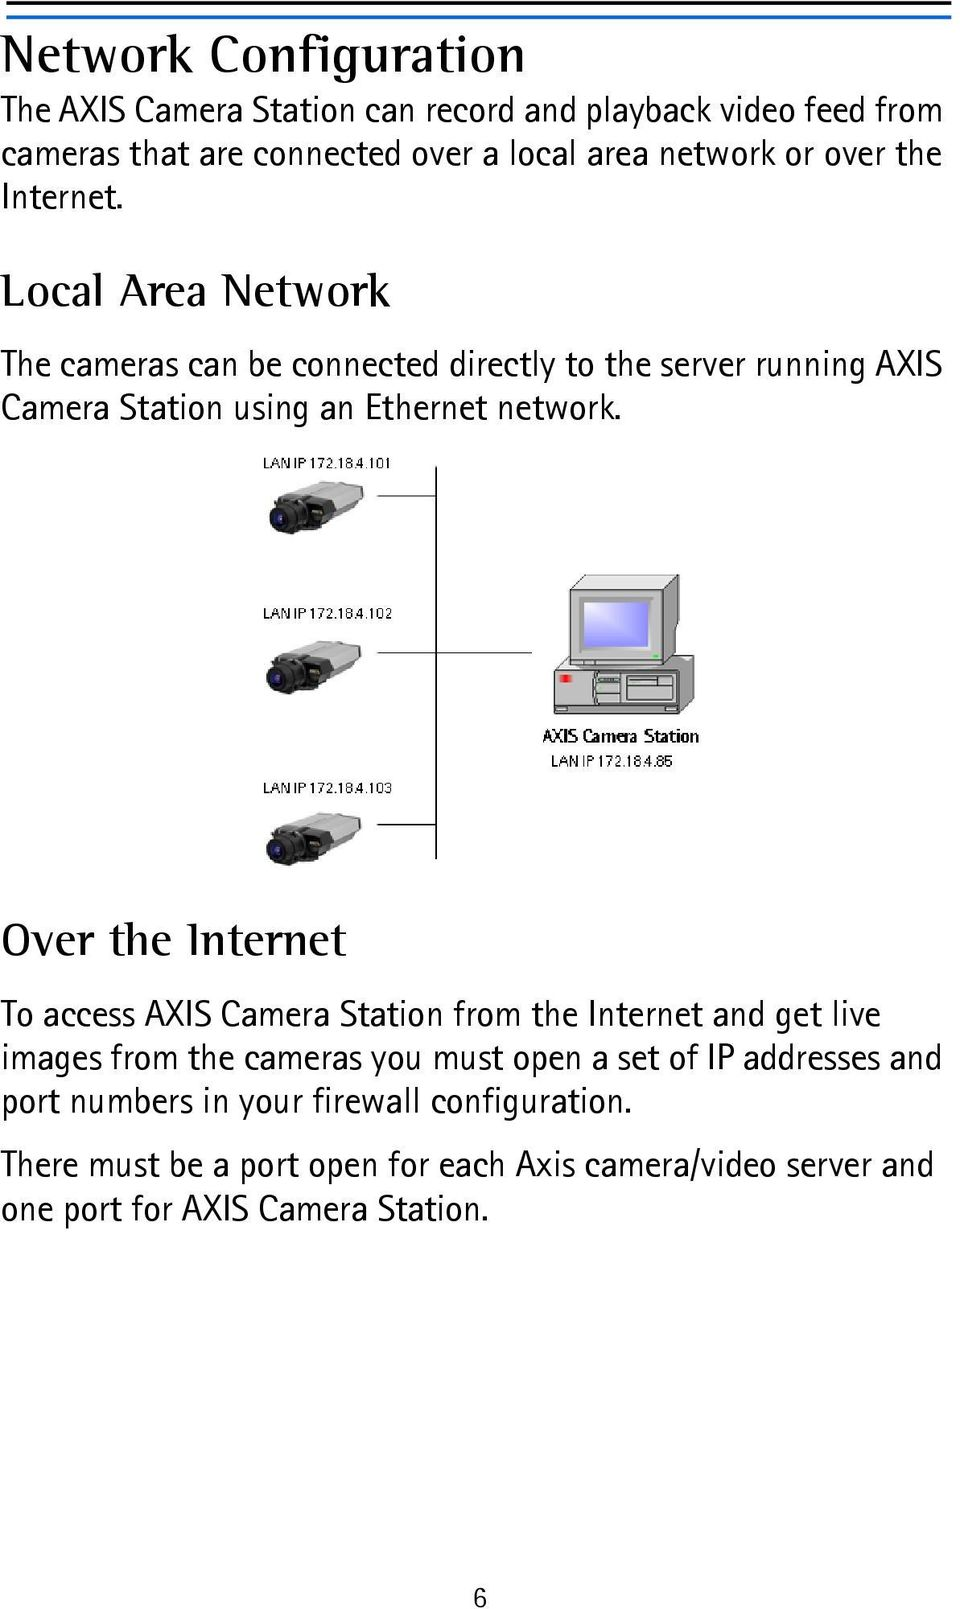 Over the Internet To access AXIS Camera Station from the Internet and get live images from the cameras you must open a set of IP addresses and